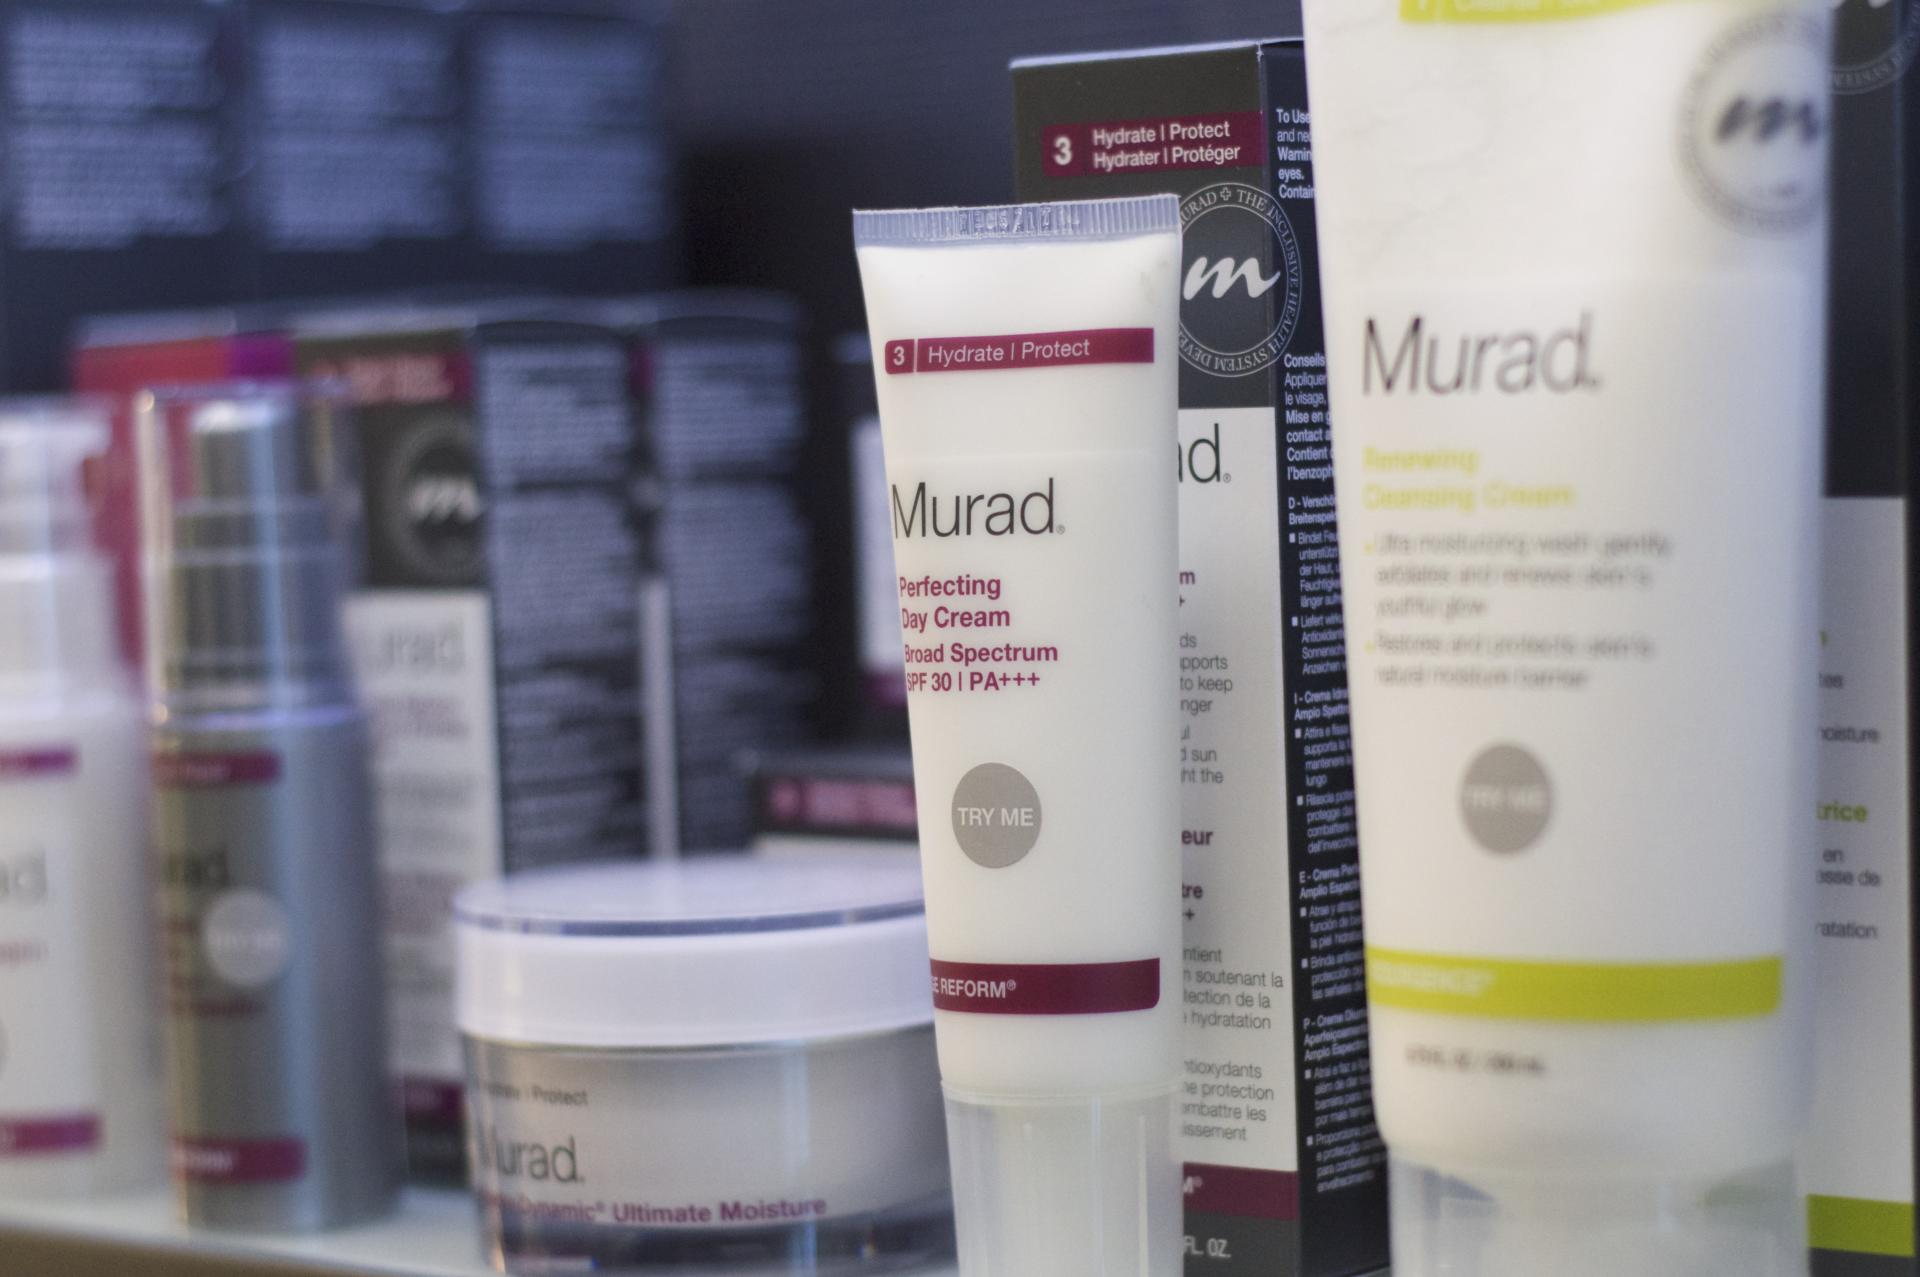 Made From Beauty Ruma Salons Murad Products